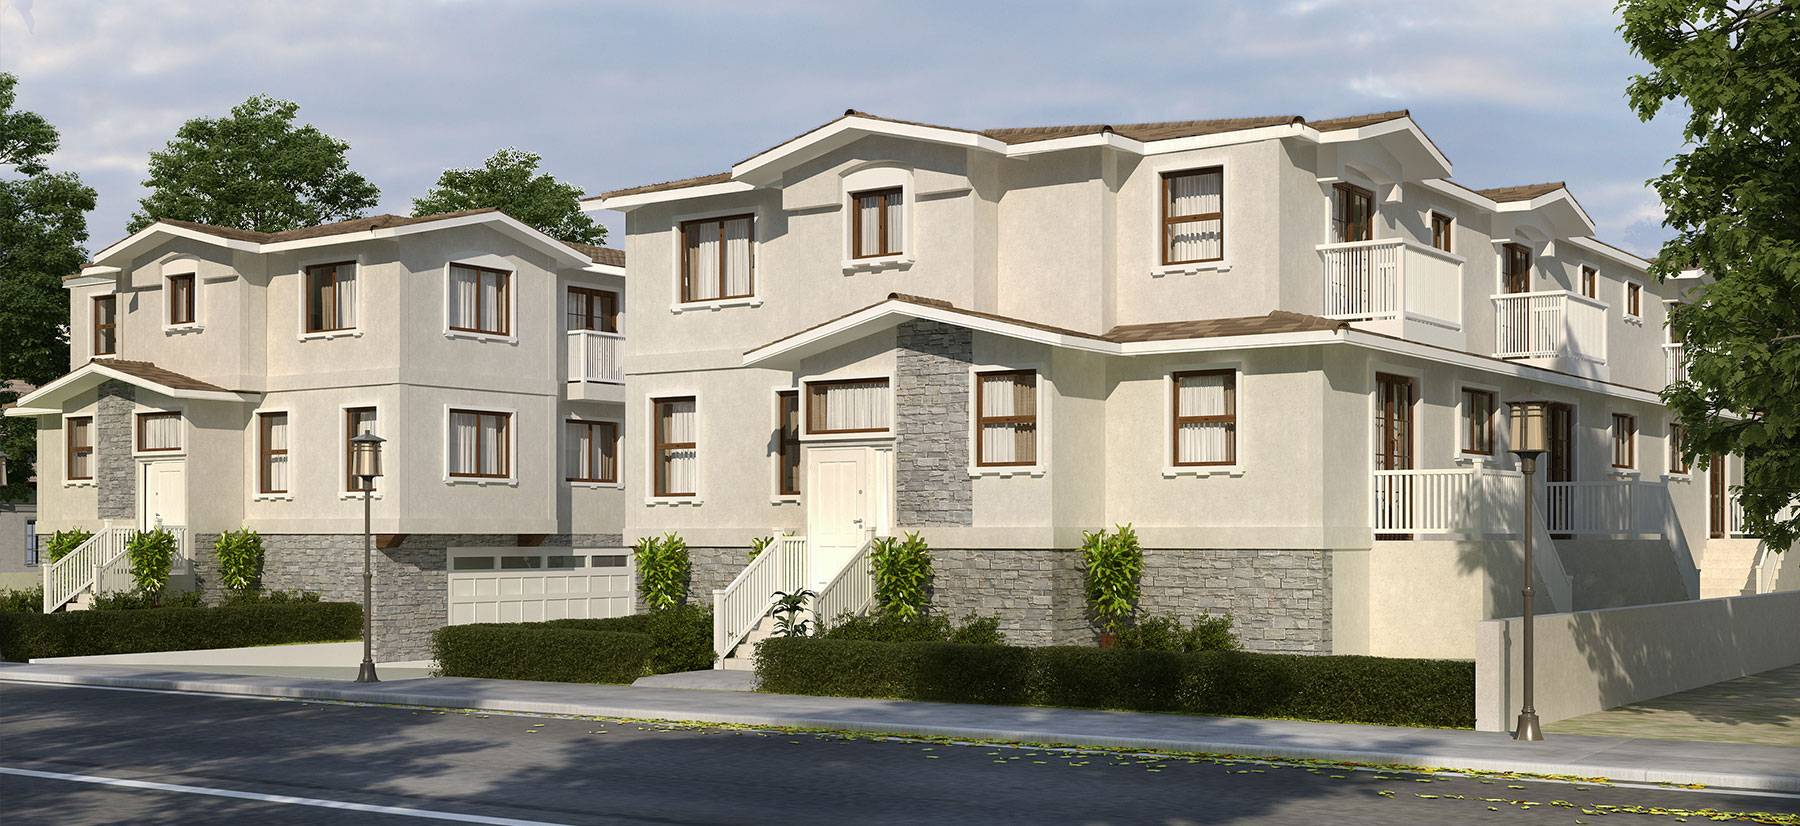 sample multi-family housing project by the City government of Mountain View